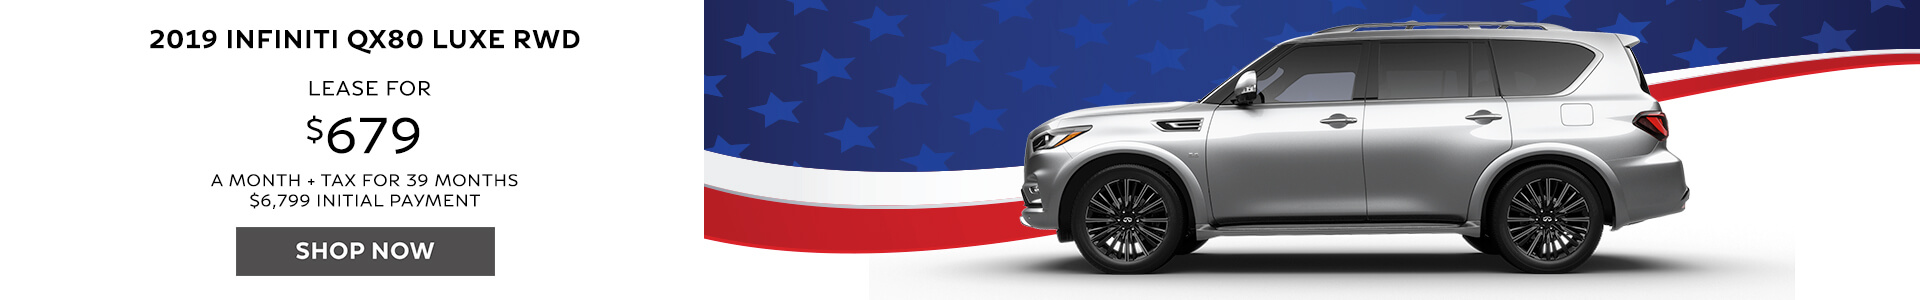 QX80 - Lease for $679